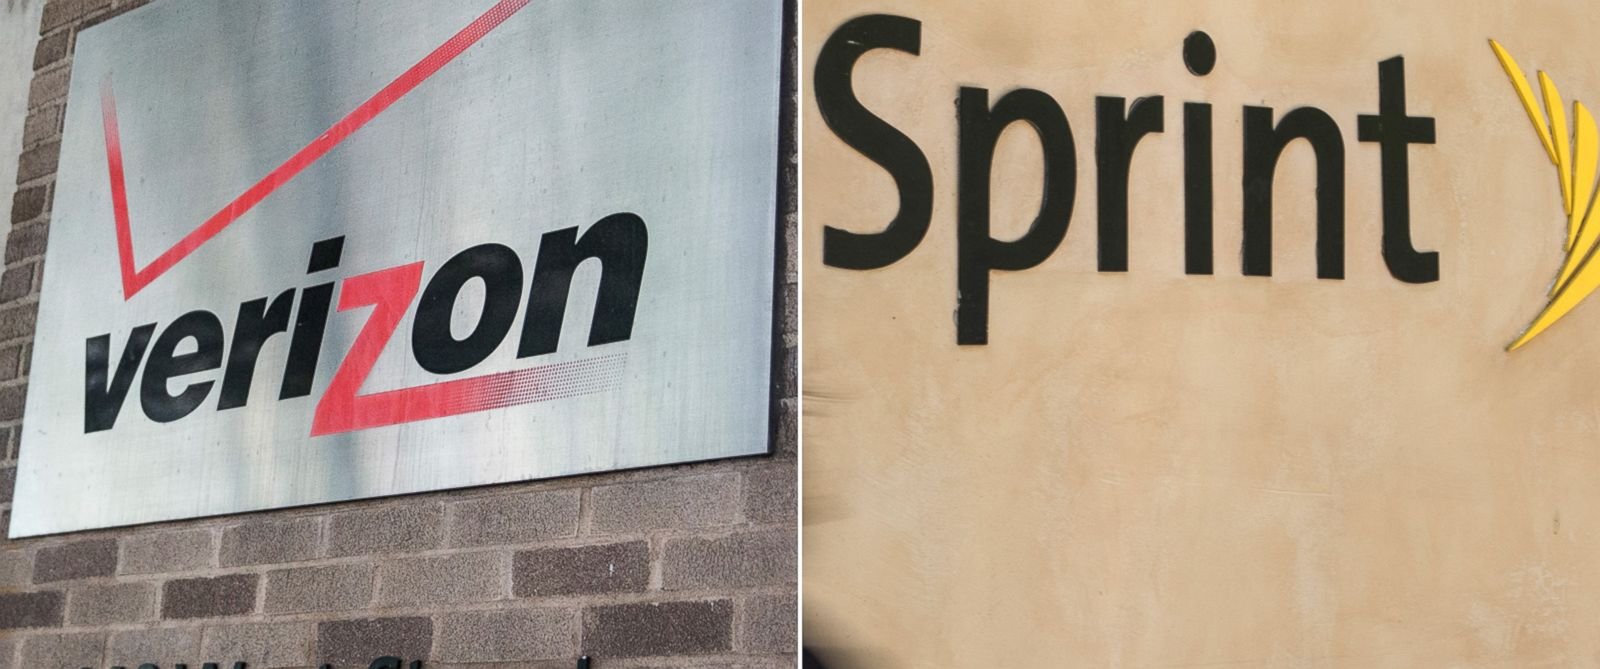 PHOTO: Verizon and Sprint logos are seen here in this undated file photo.